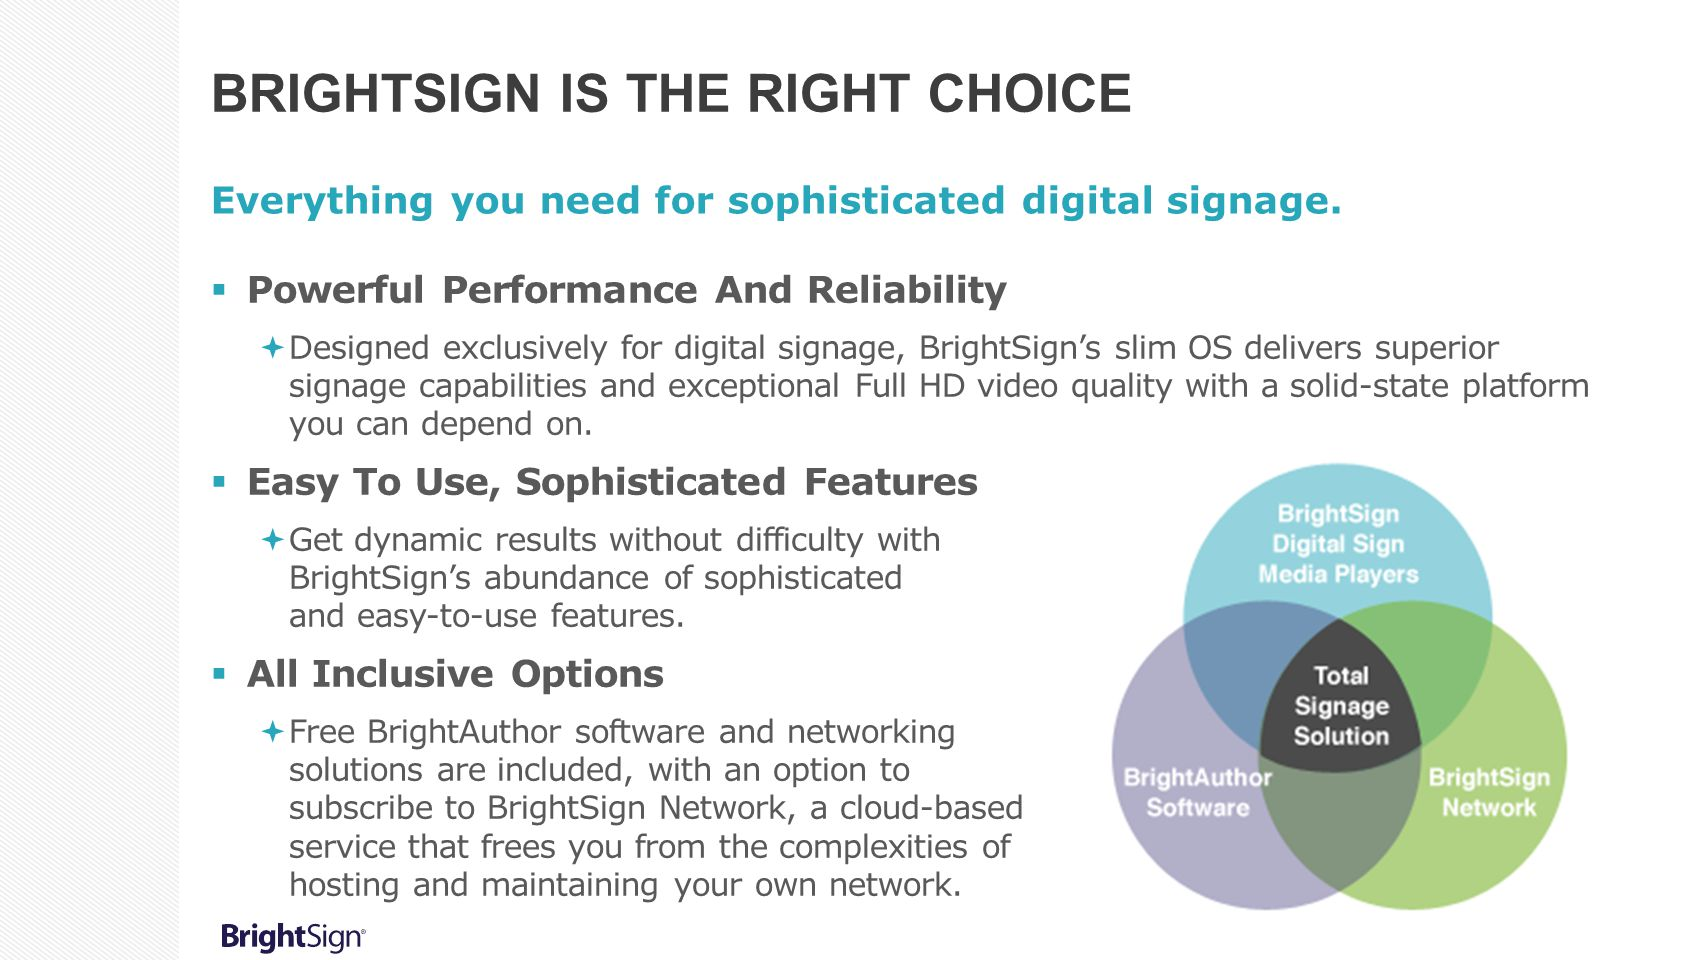 MORE RETAIL BRANDS USING BRIGHTSIGN Major retailers using BrightSign for promotions, merchandising and branding